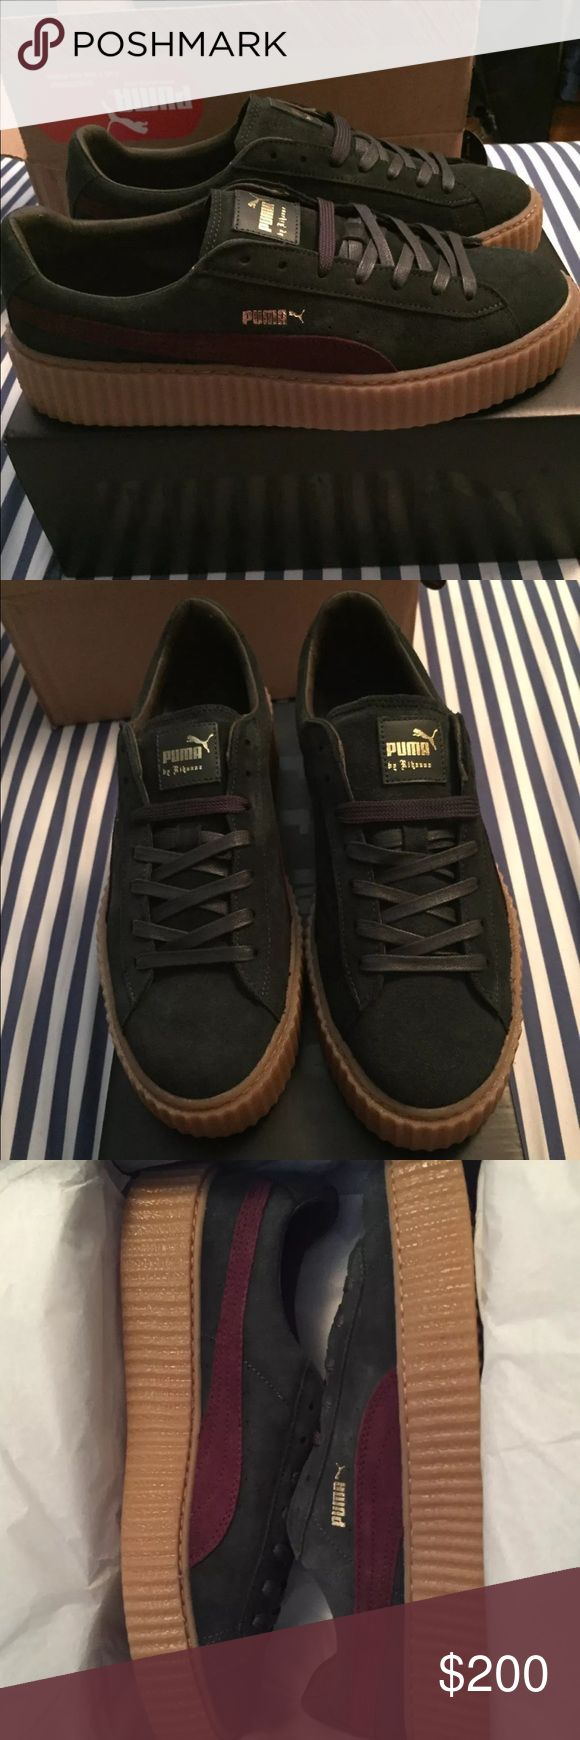 puma creepers mens size 11